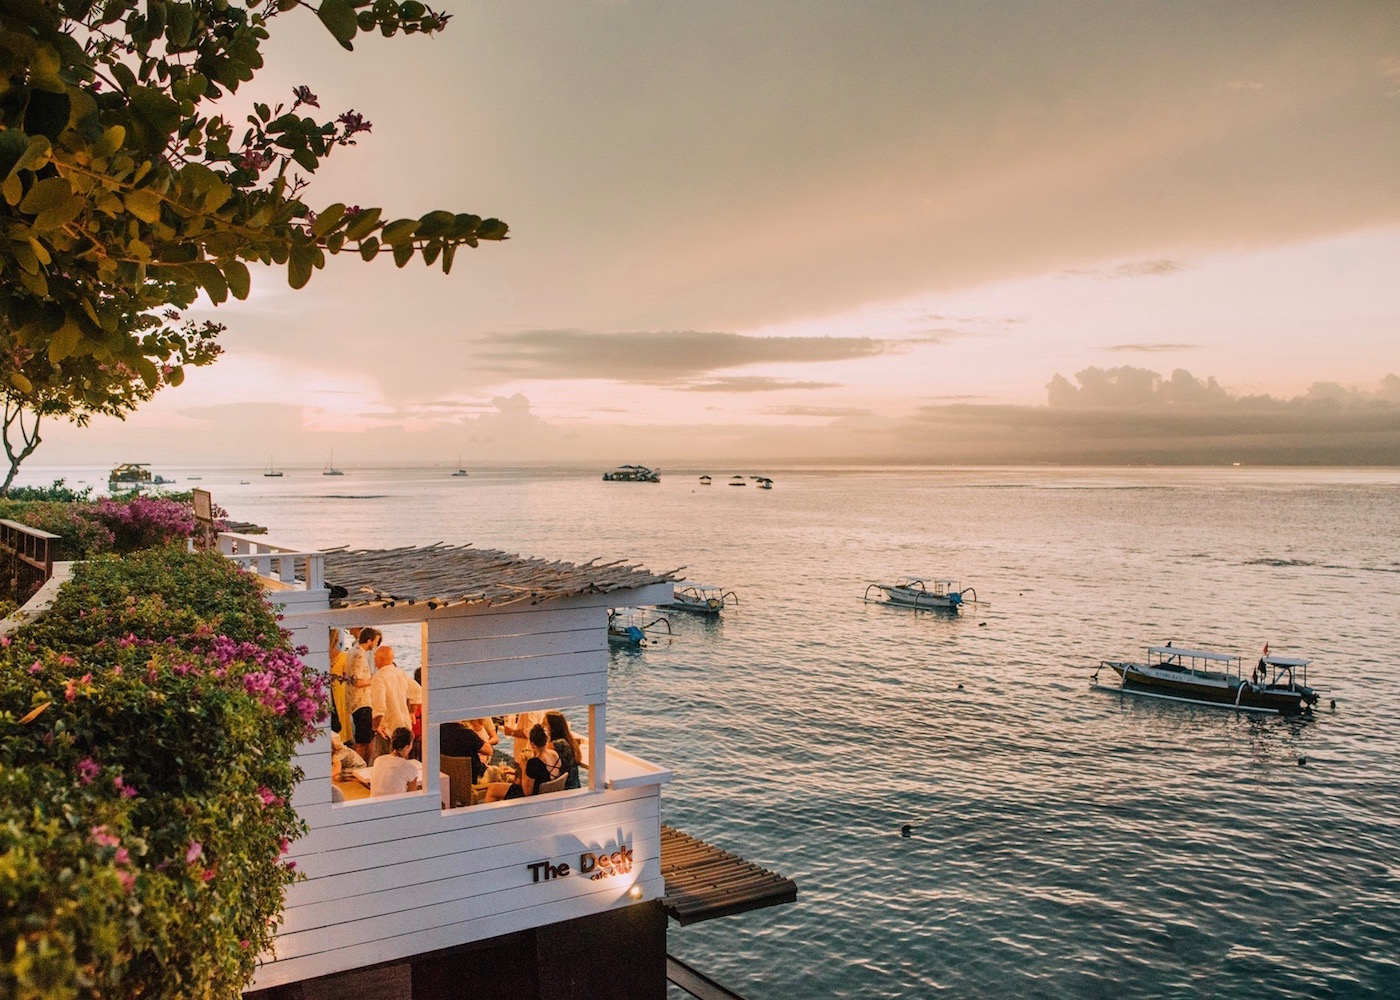 Sunset at The Deck restaurant & bar on Nusa Lembongan in Bali, Indonesia